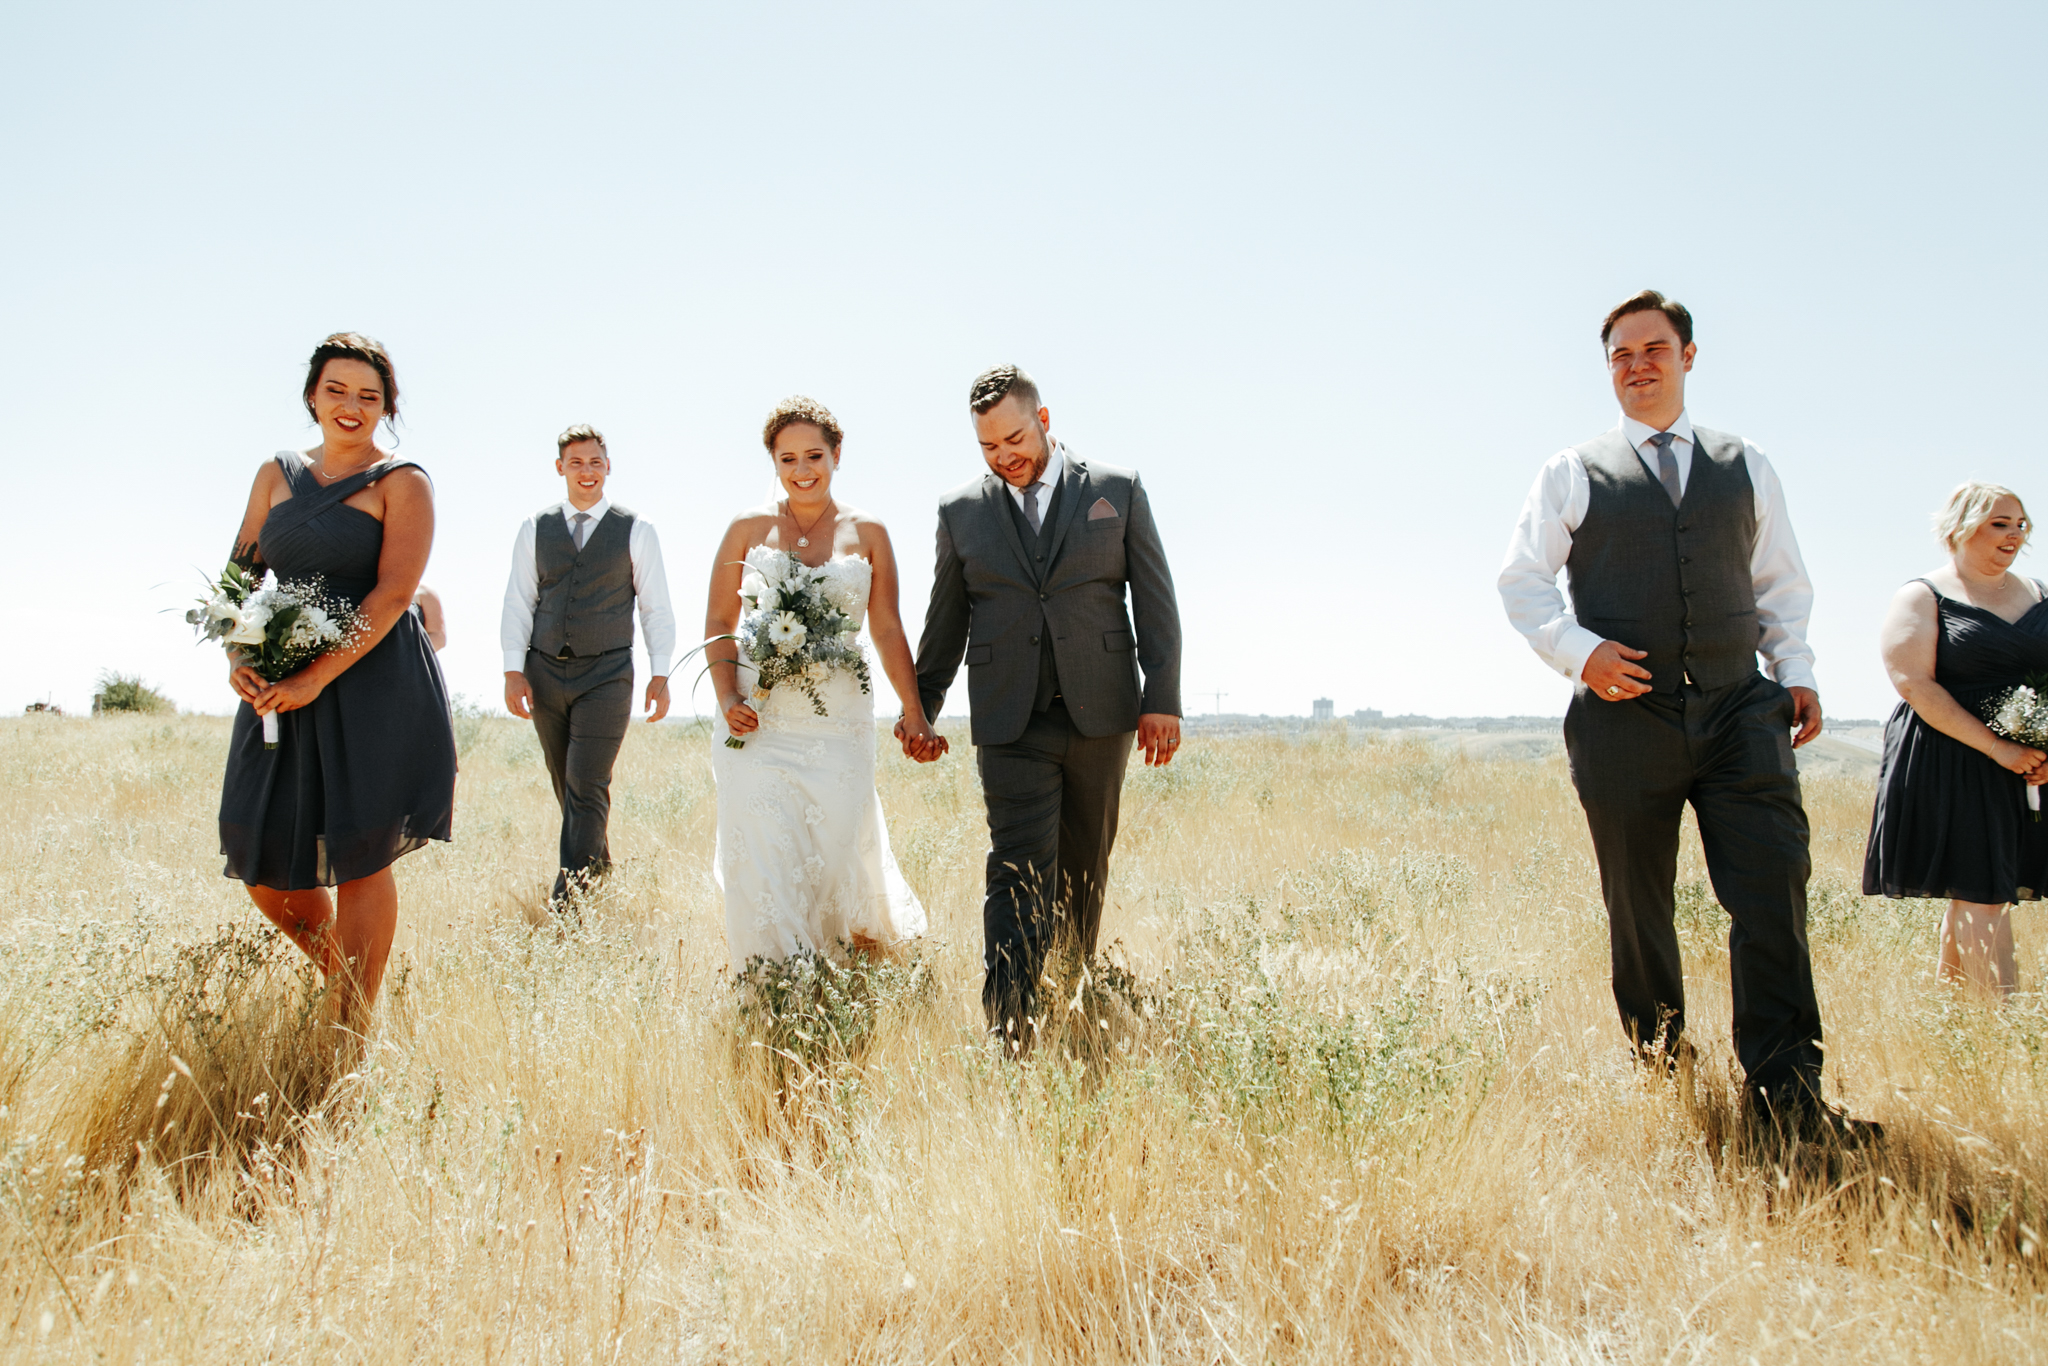 lethbridge-wedding-photographer-love-and-be-loved-photography-trent-danielle-galt-reception-picture-image-photo-90.jpg